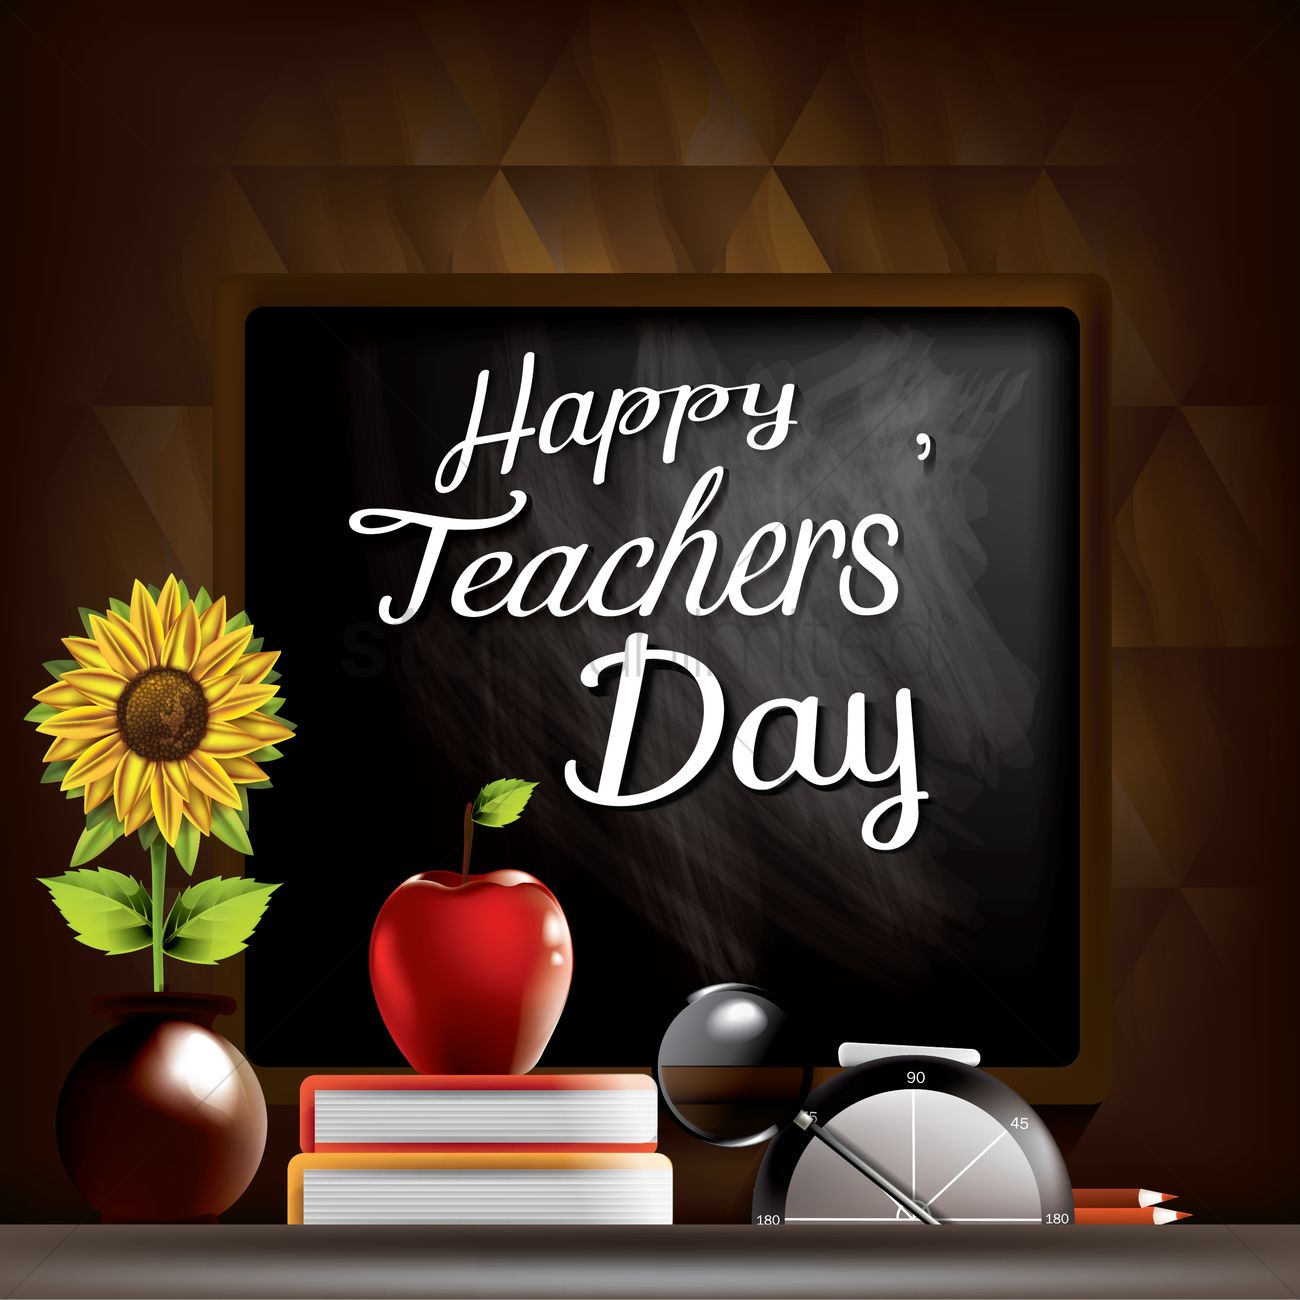 Teachers day concept Vector Image - 1996006 | StockUnlimited